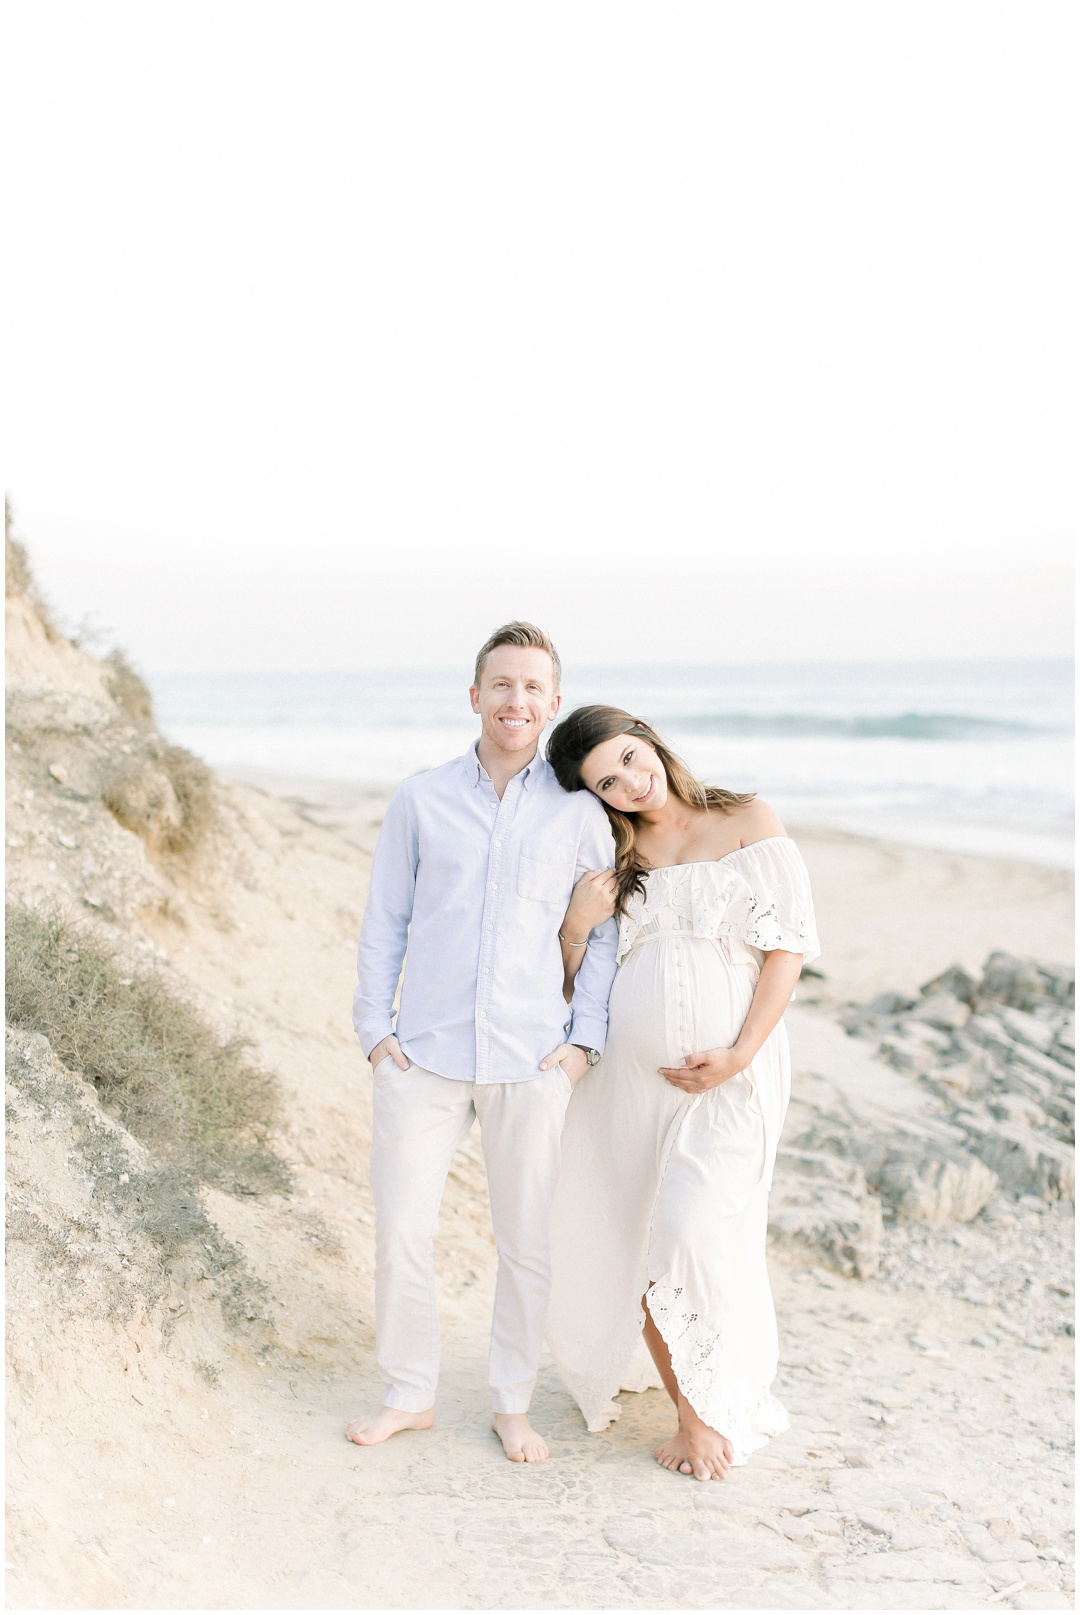 Orange_County_Maternity_Photographer_Newport_Beach_Family_Photographer_Newport_Beach_Newborn_Photographer_Orange_County_Family_Photographer_Cori_Kleckner_Photography_Huntington_Beach_Photographer_Nicole_Gire_Brandon_Gire__2569.jpg